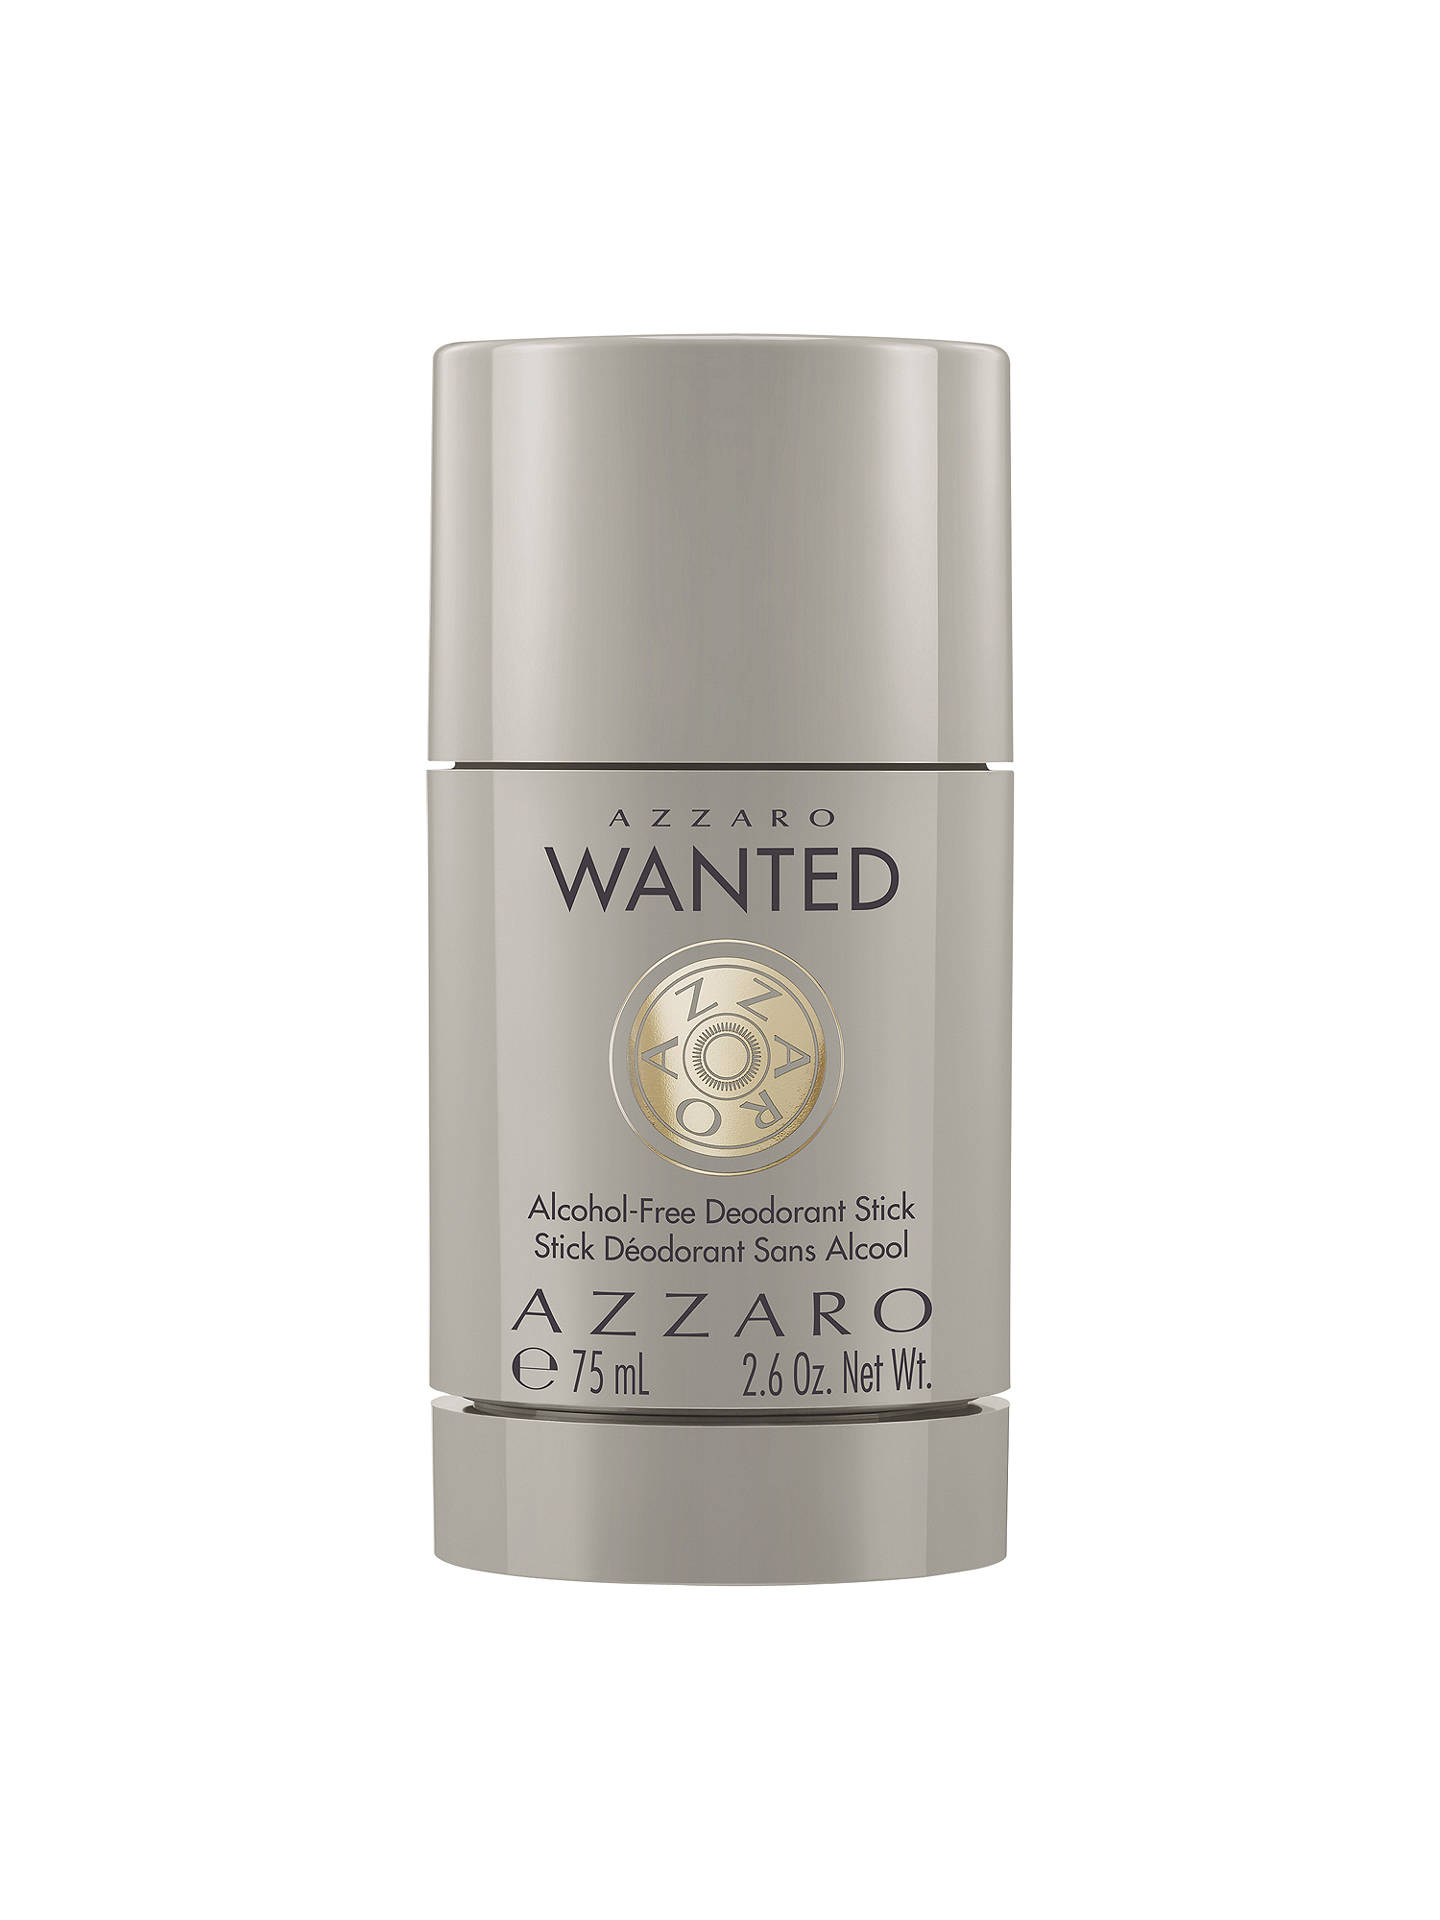 BuyAzzaro Wanted Alcohol-Free Deodorant Stick, 75ml Online at johnlewis.com